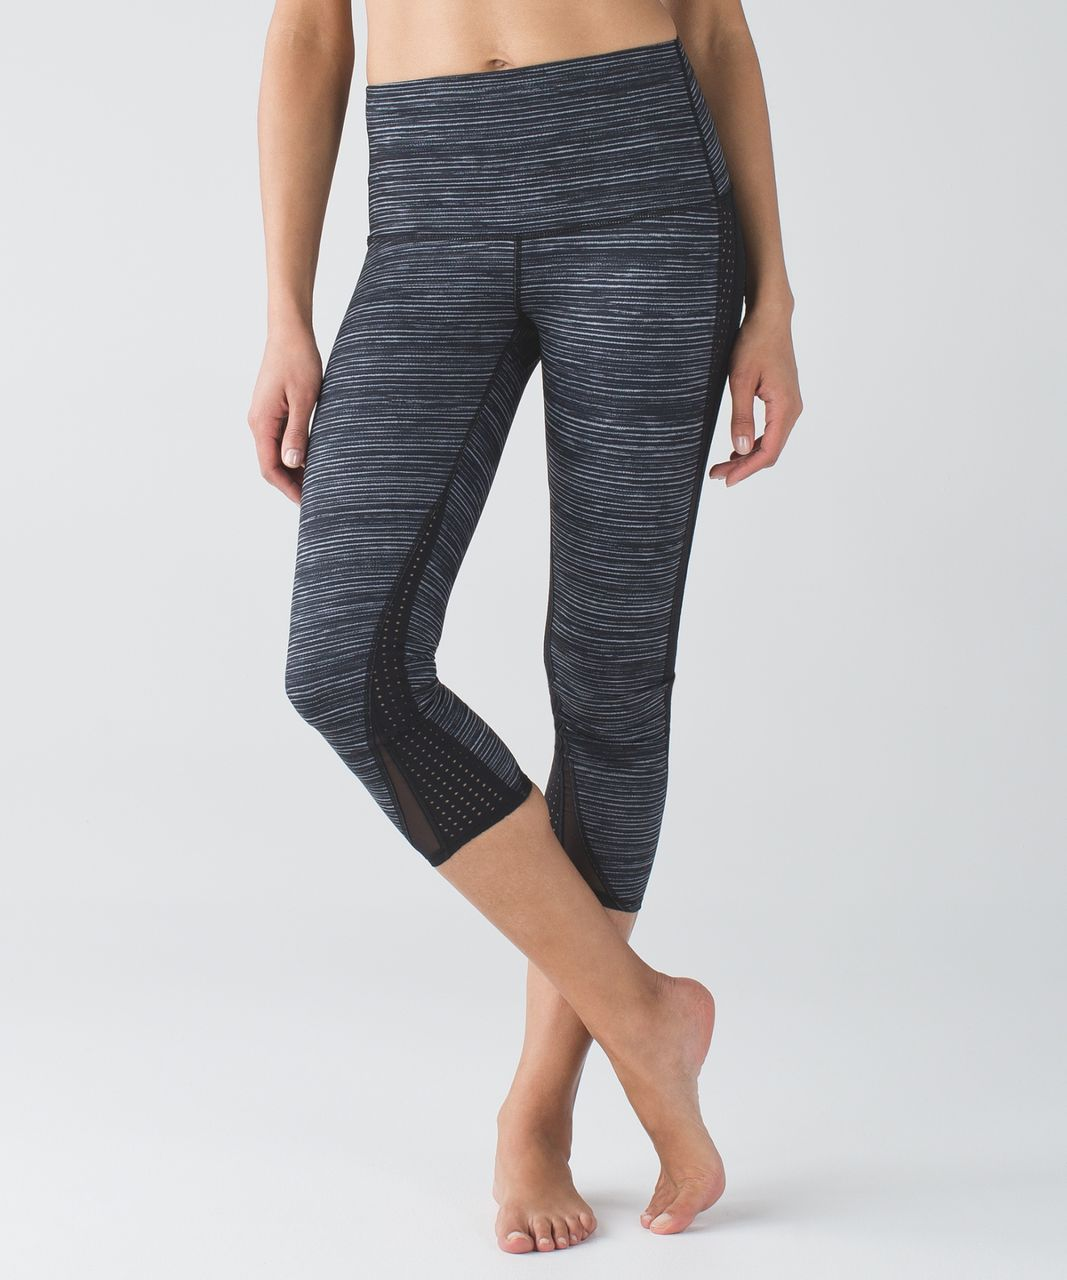 Lululemon Wunder Under Crop - Blurry Belle Battleship Black / Black